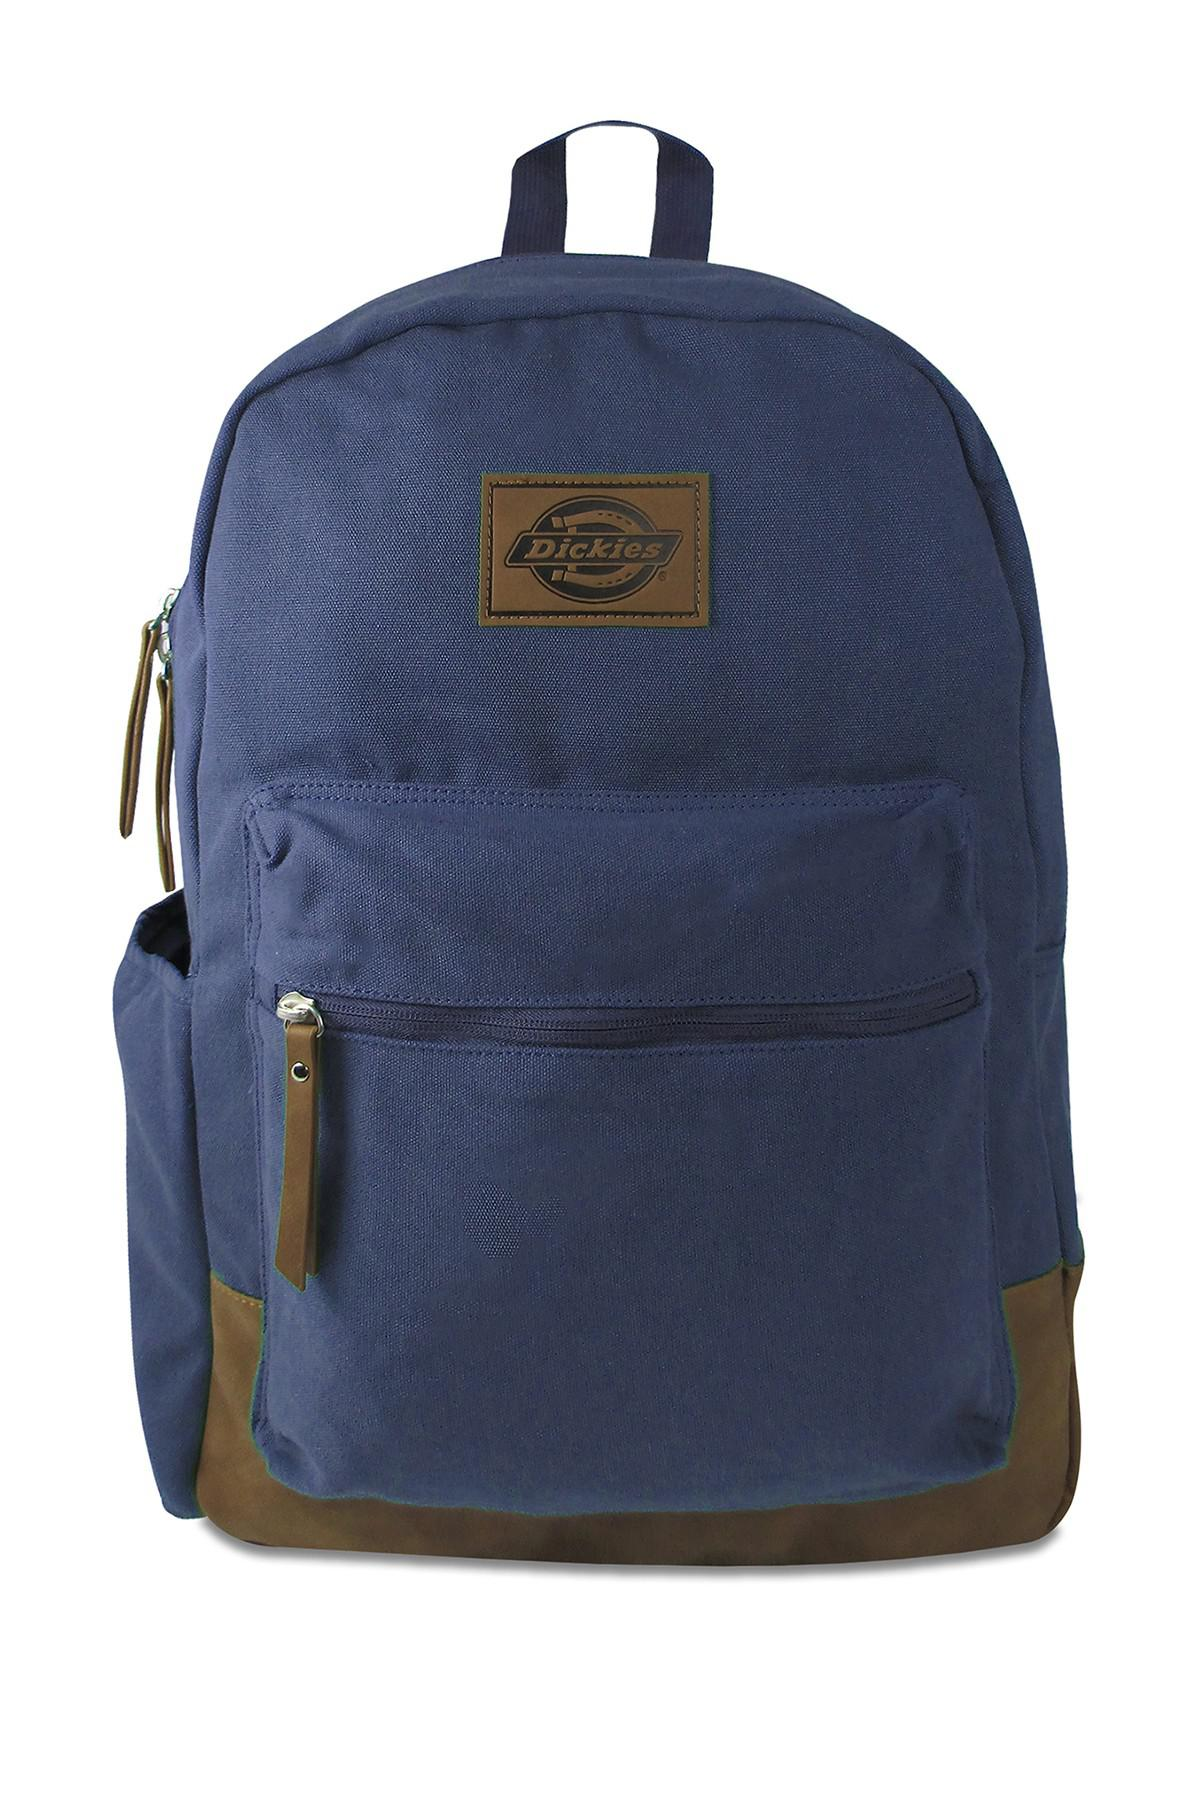 c4b6e9bb14c8 Lyst - Dickies Hudson Canvas Backpack in Blue for Men